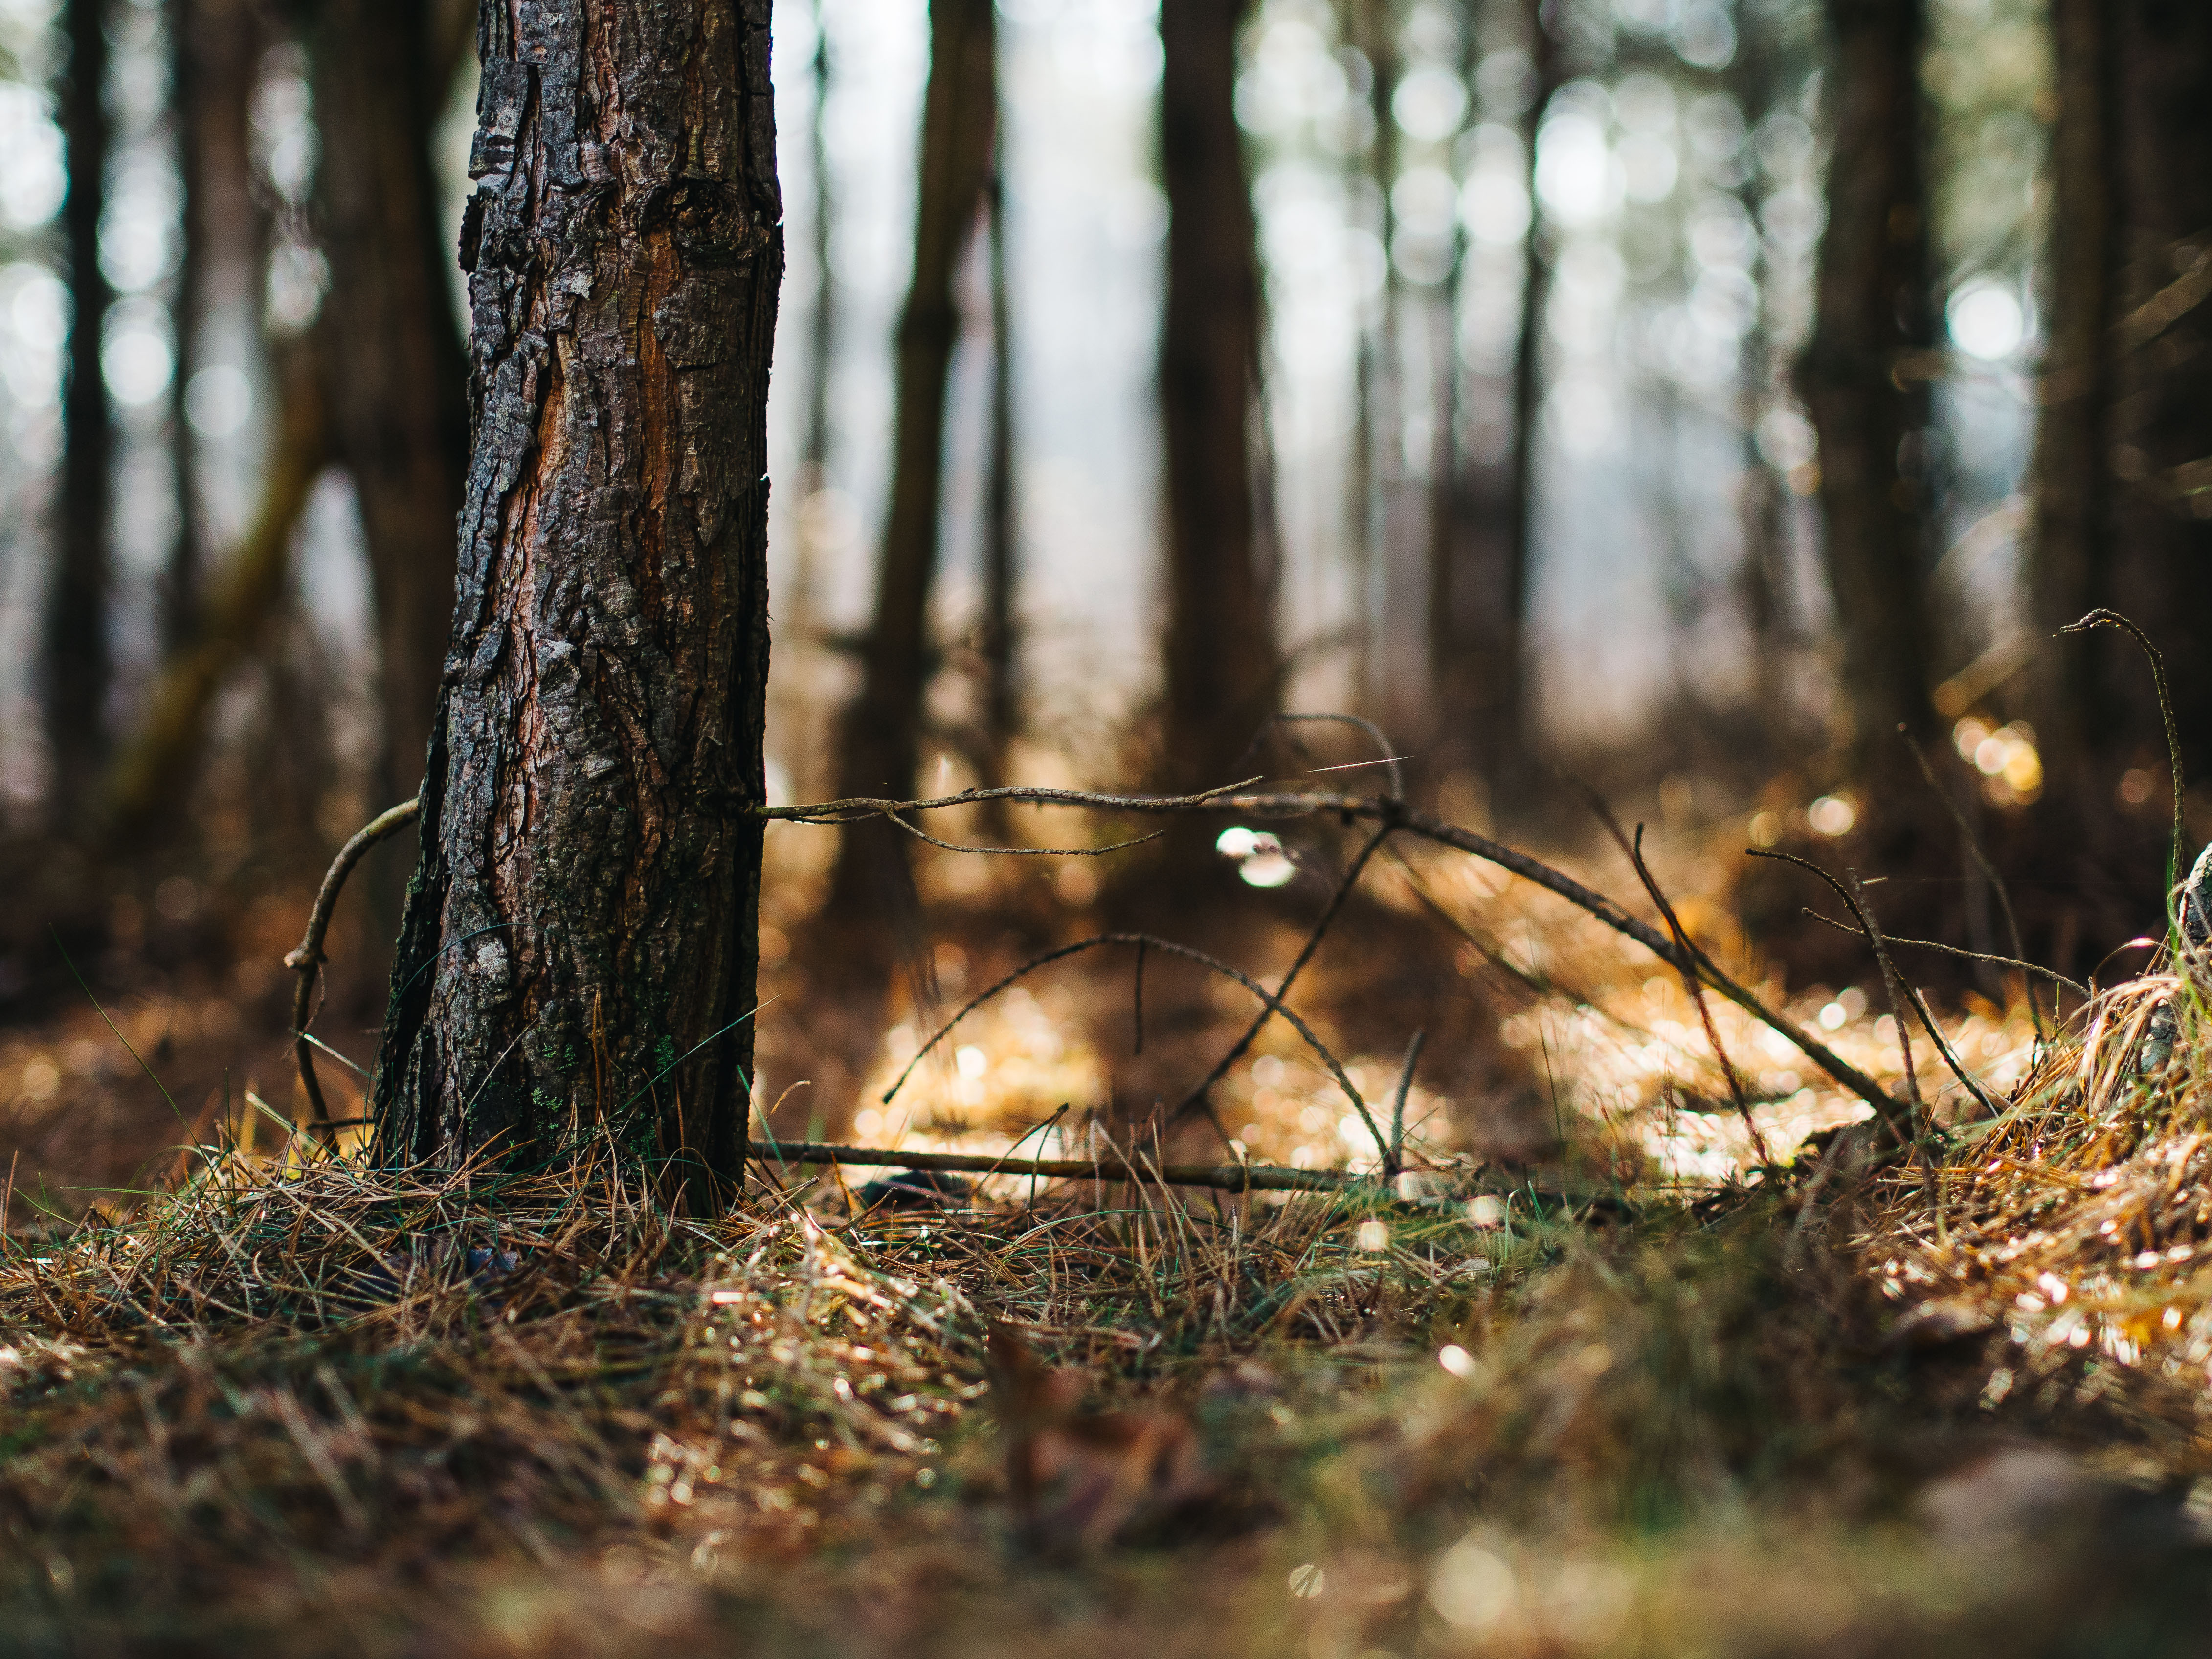 Natural forest, woods, outdoors, nature, afternoon, saturday, tree, sun, grass, bokeh, february